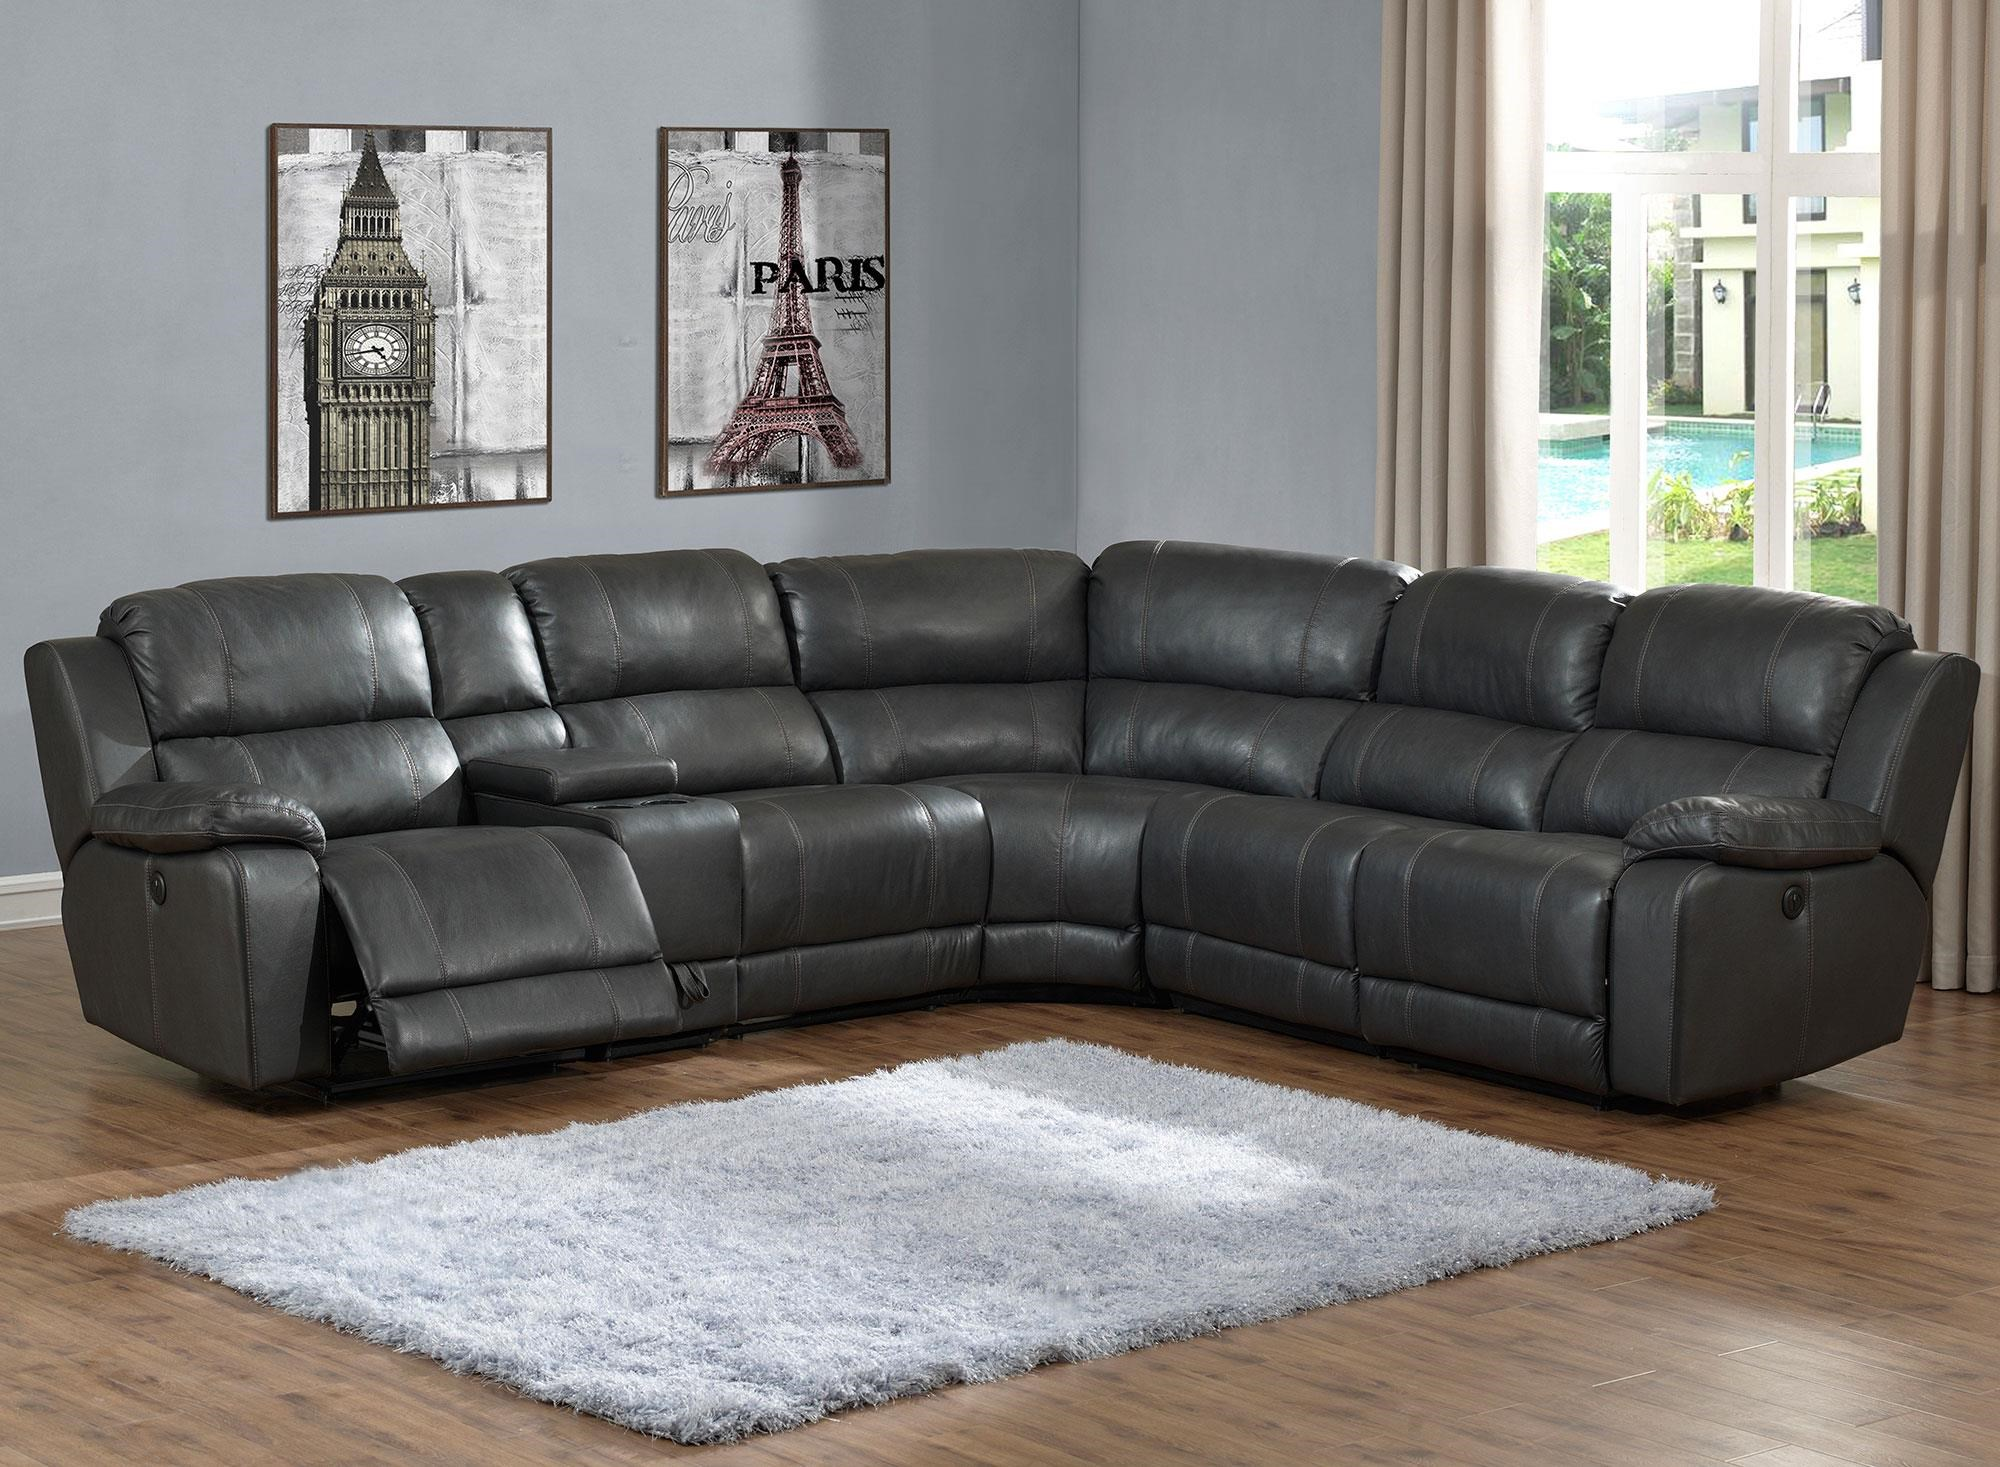 Prime Resources International Calais 6PC Power Reclining Leather Sectional - Item Number: A317-6PC-PRSEC